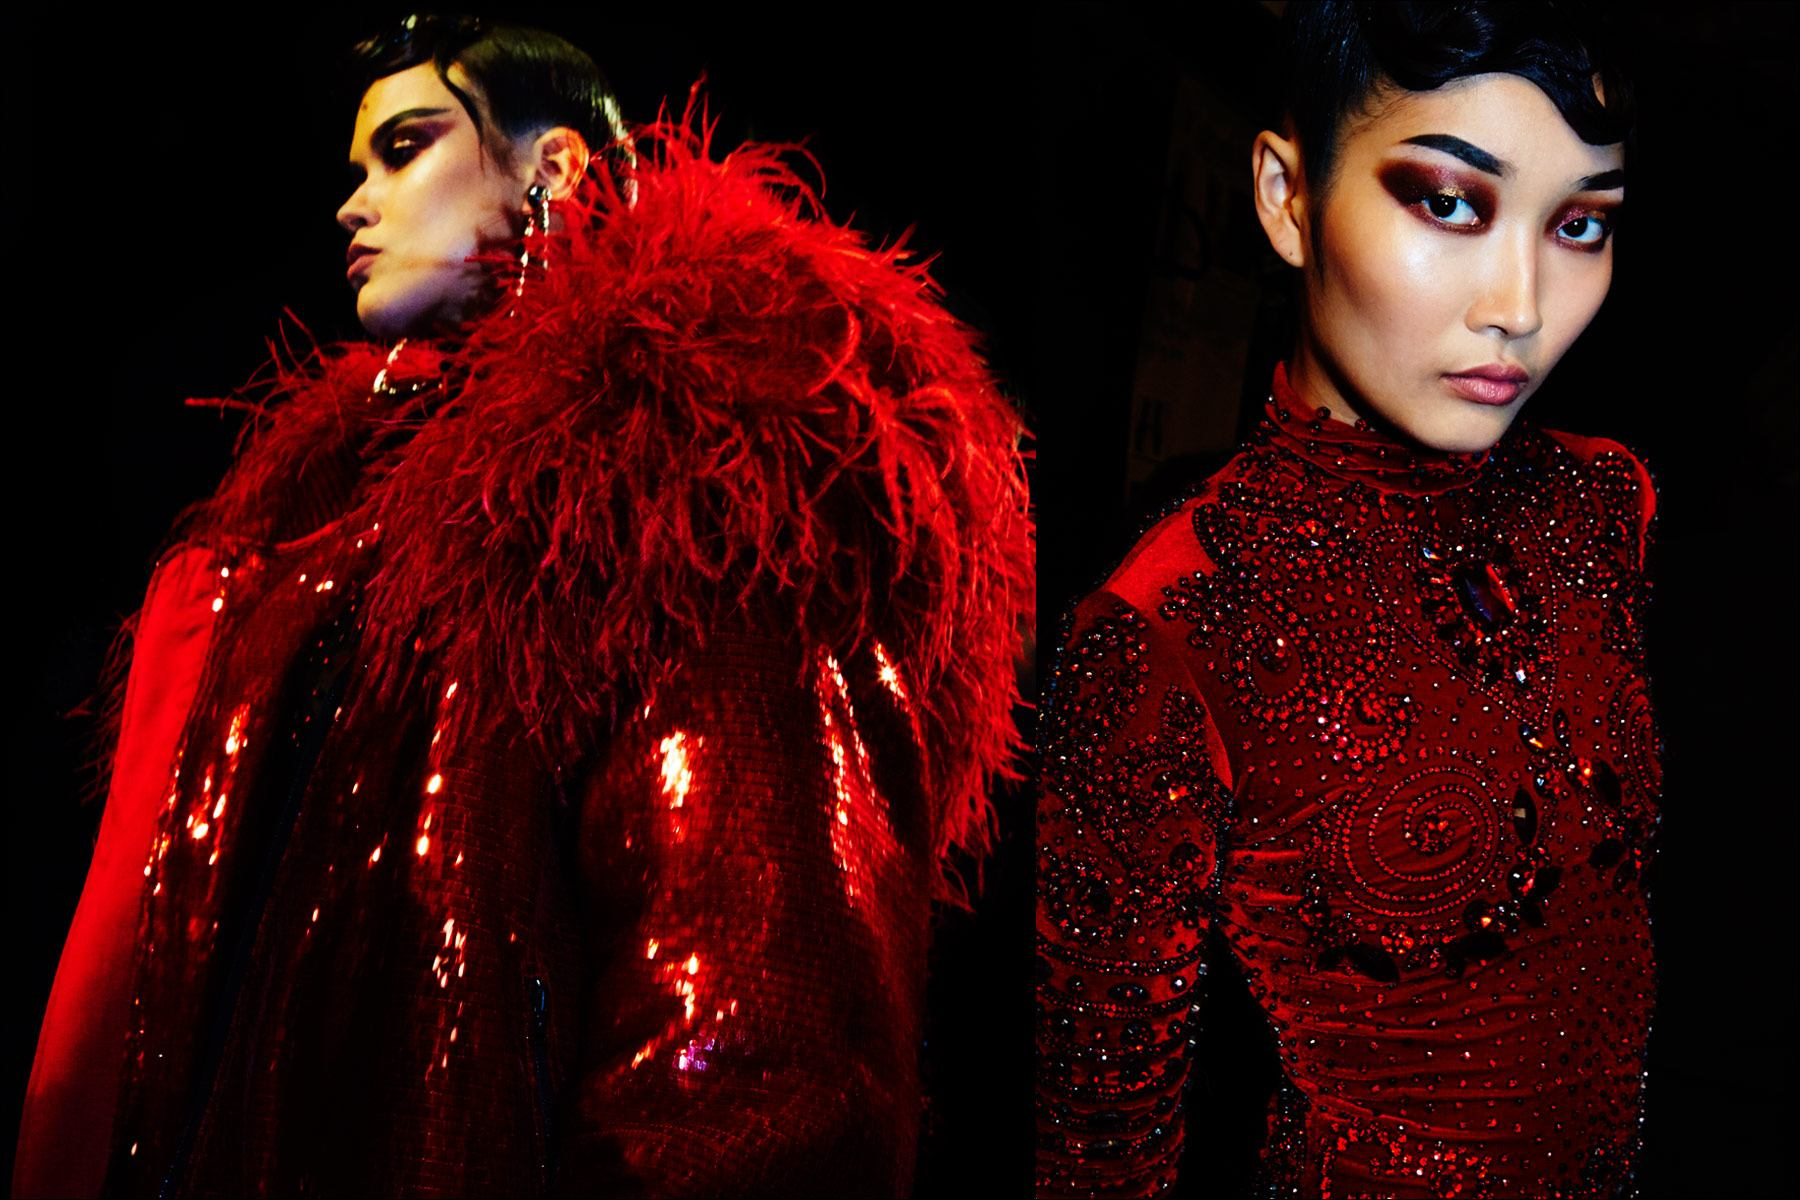 Models Marina Albino &Hong Jisu wear red backstage at The Blonds Fall 2017 collection. Photography by Alexander Thompson for Ponyboy magazine New York.